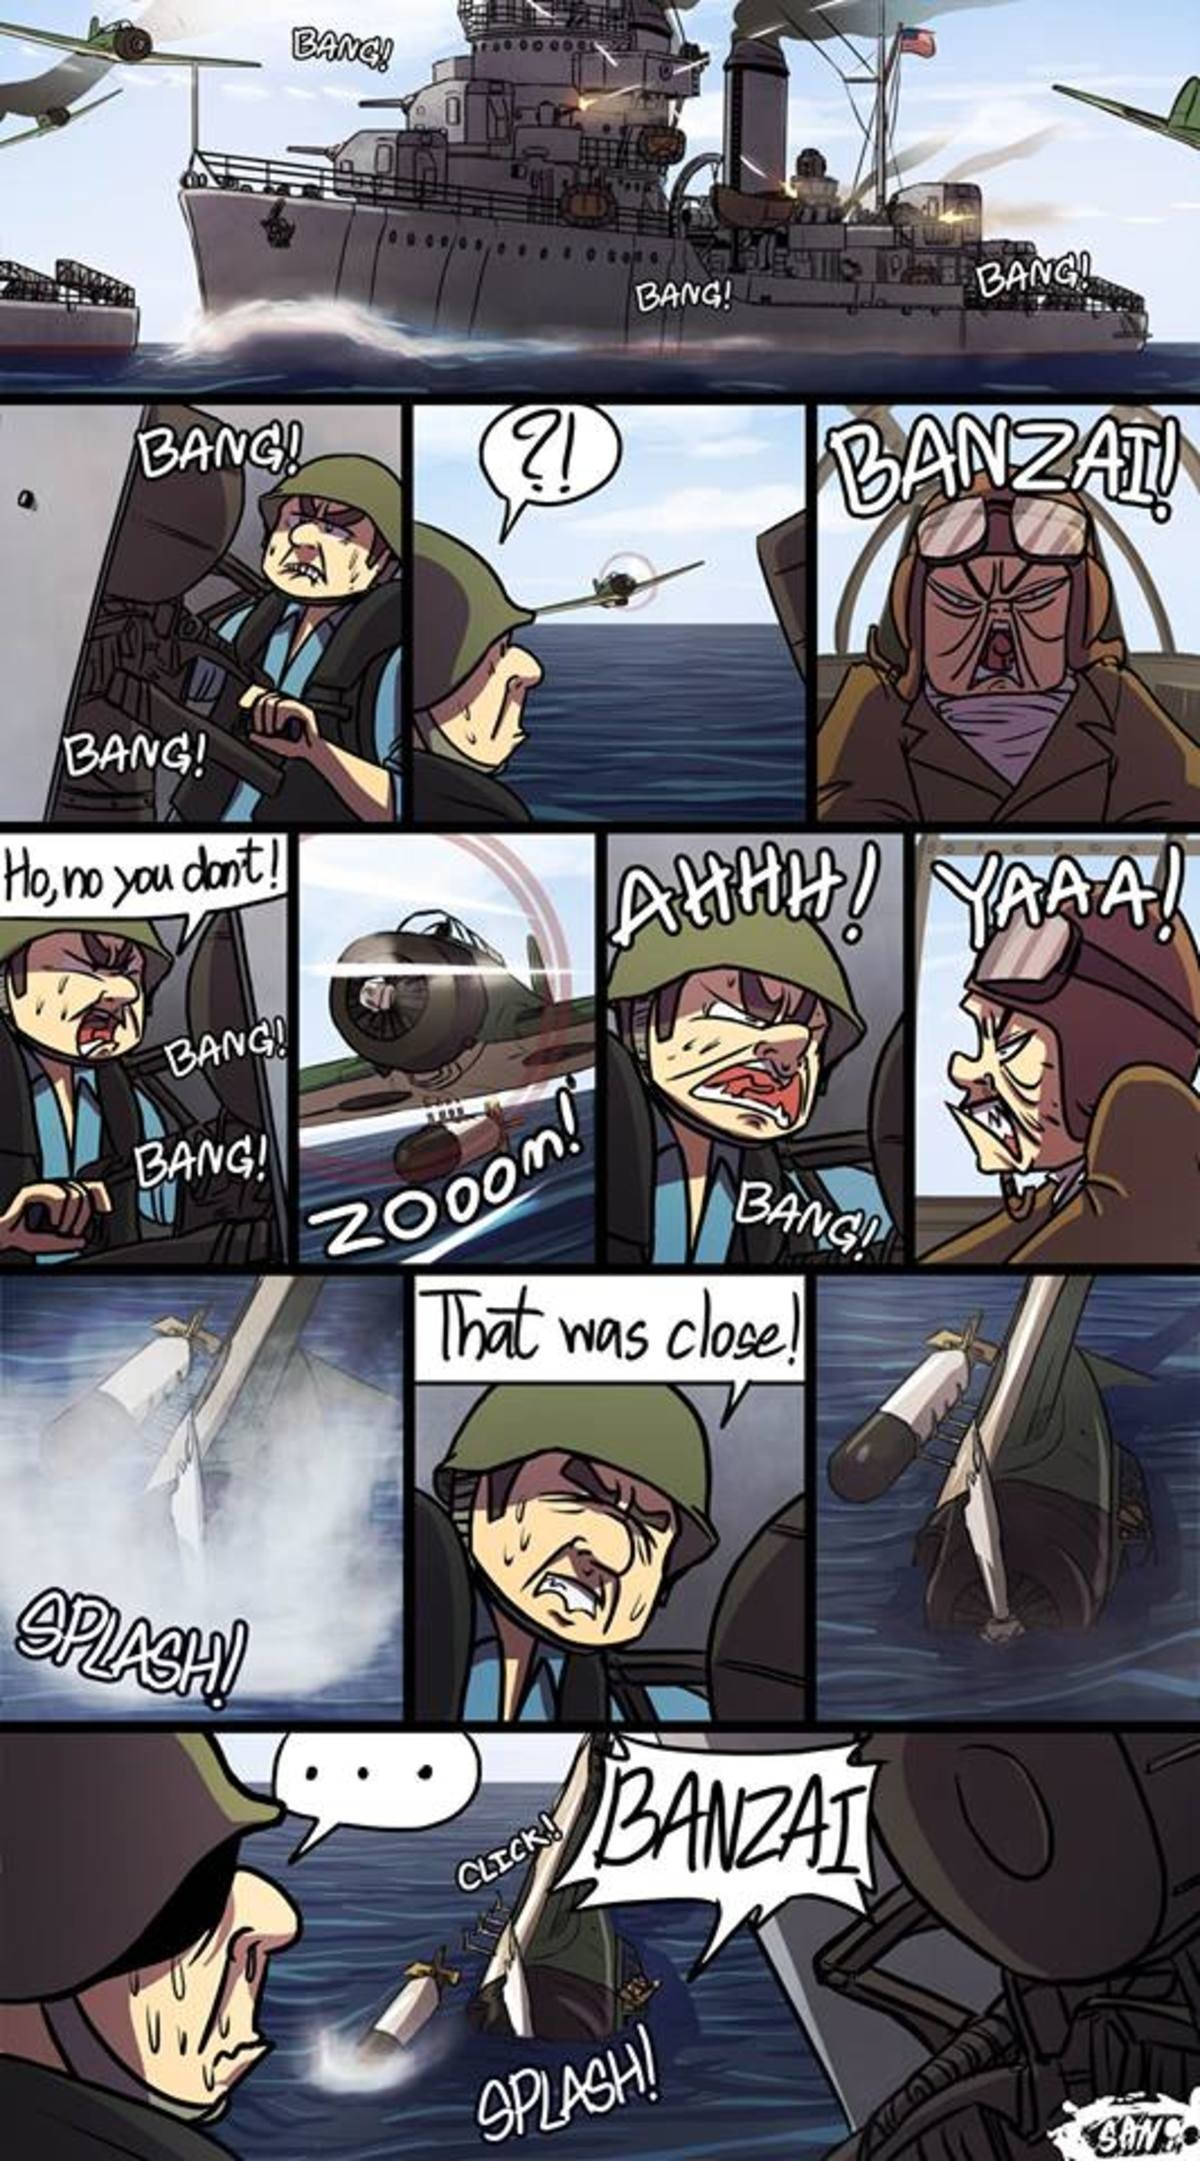 BANZAI!. join list: Combat (615 subs)Mention Clicks: 22480Msgs Sent: 95840Mention History .. >torpedo bomber and pilot surviving a crash into water with minimal damage